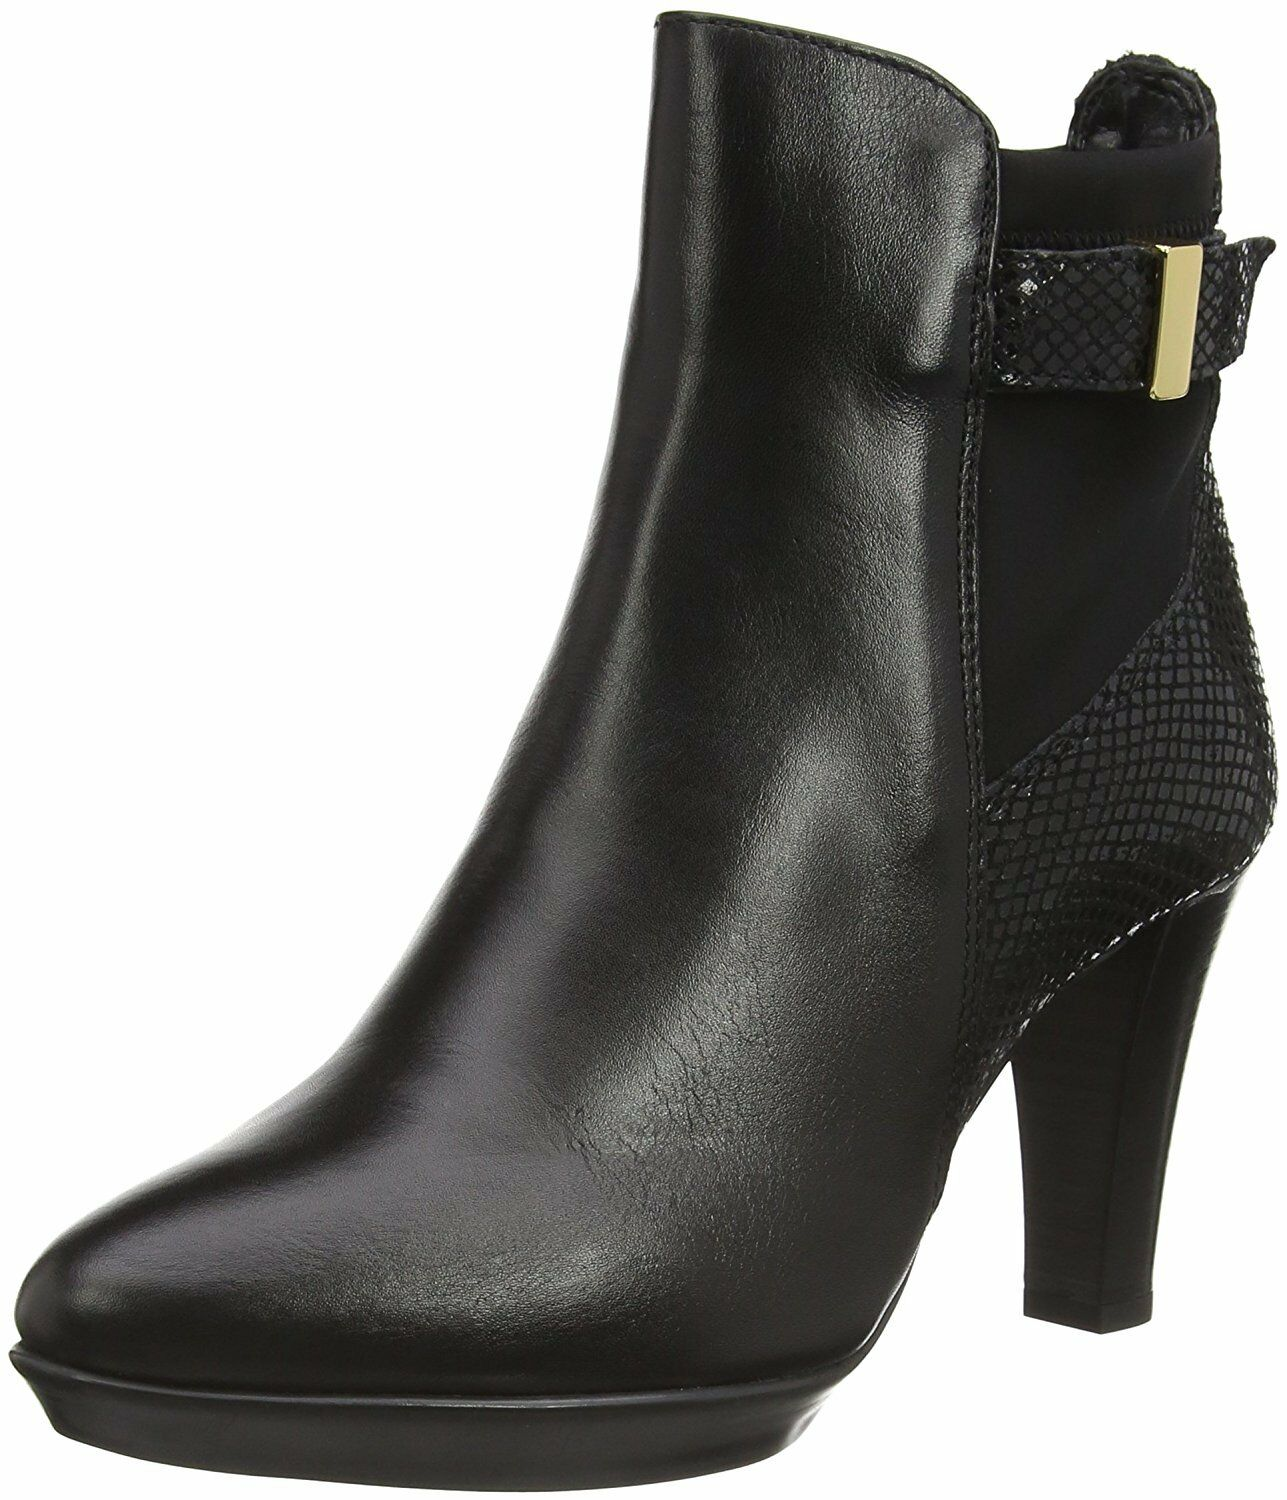 Grandes zapatos con descuento 130 NEW CARVELA SIZE 7 8 BLACK REAL LEATHER RAE HIGH HEEL COMFORT ANKLE BOOTS